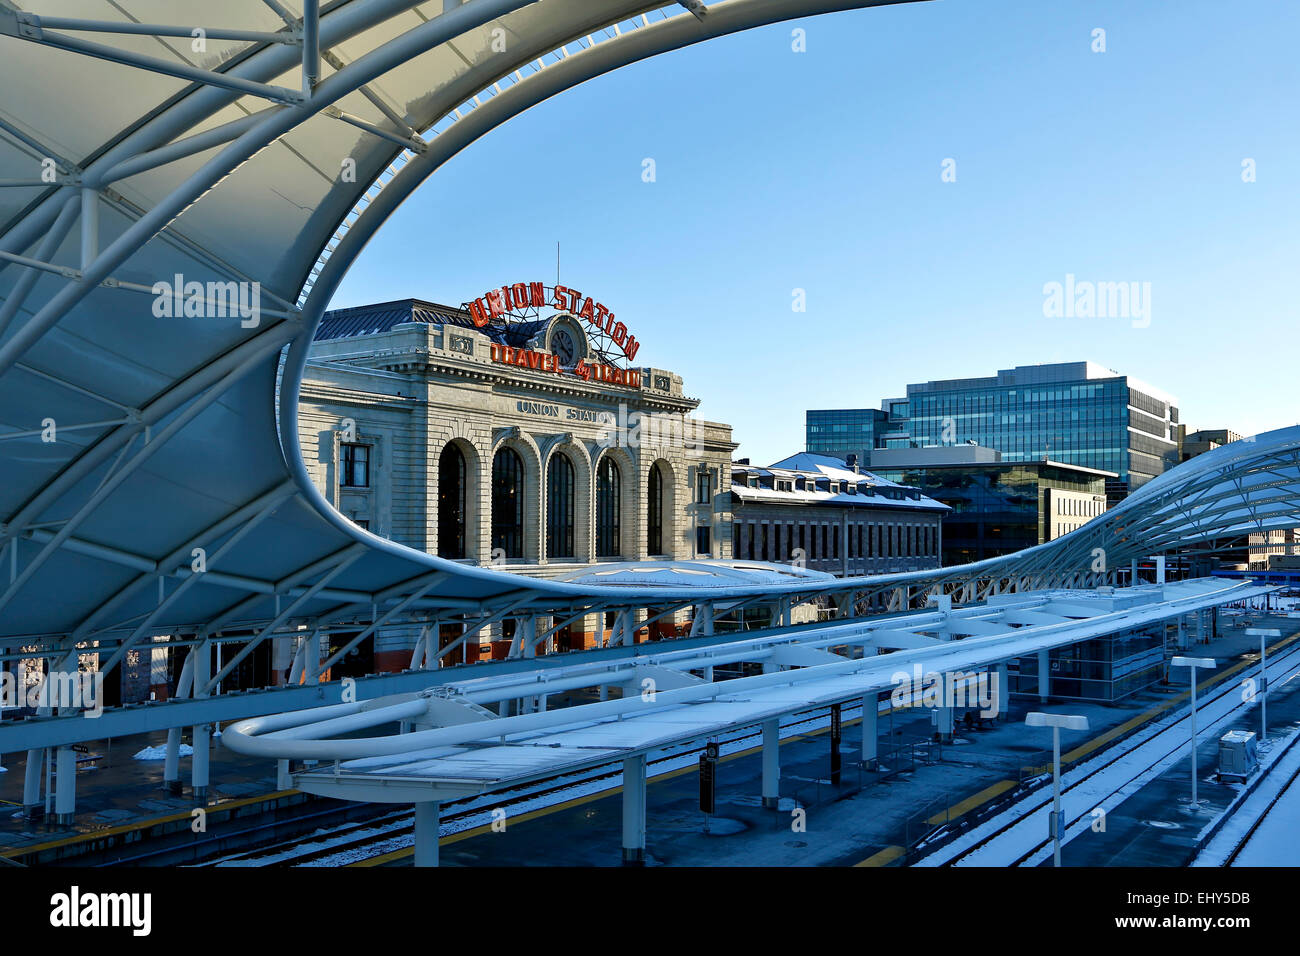 Union Station, Denver, Colorado USA Stockbild